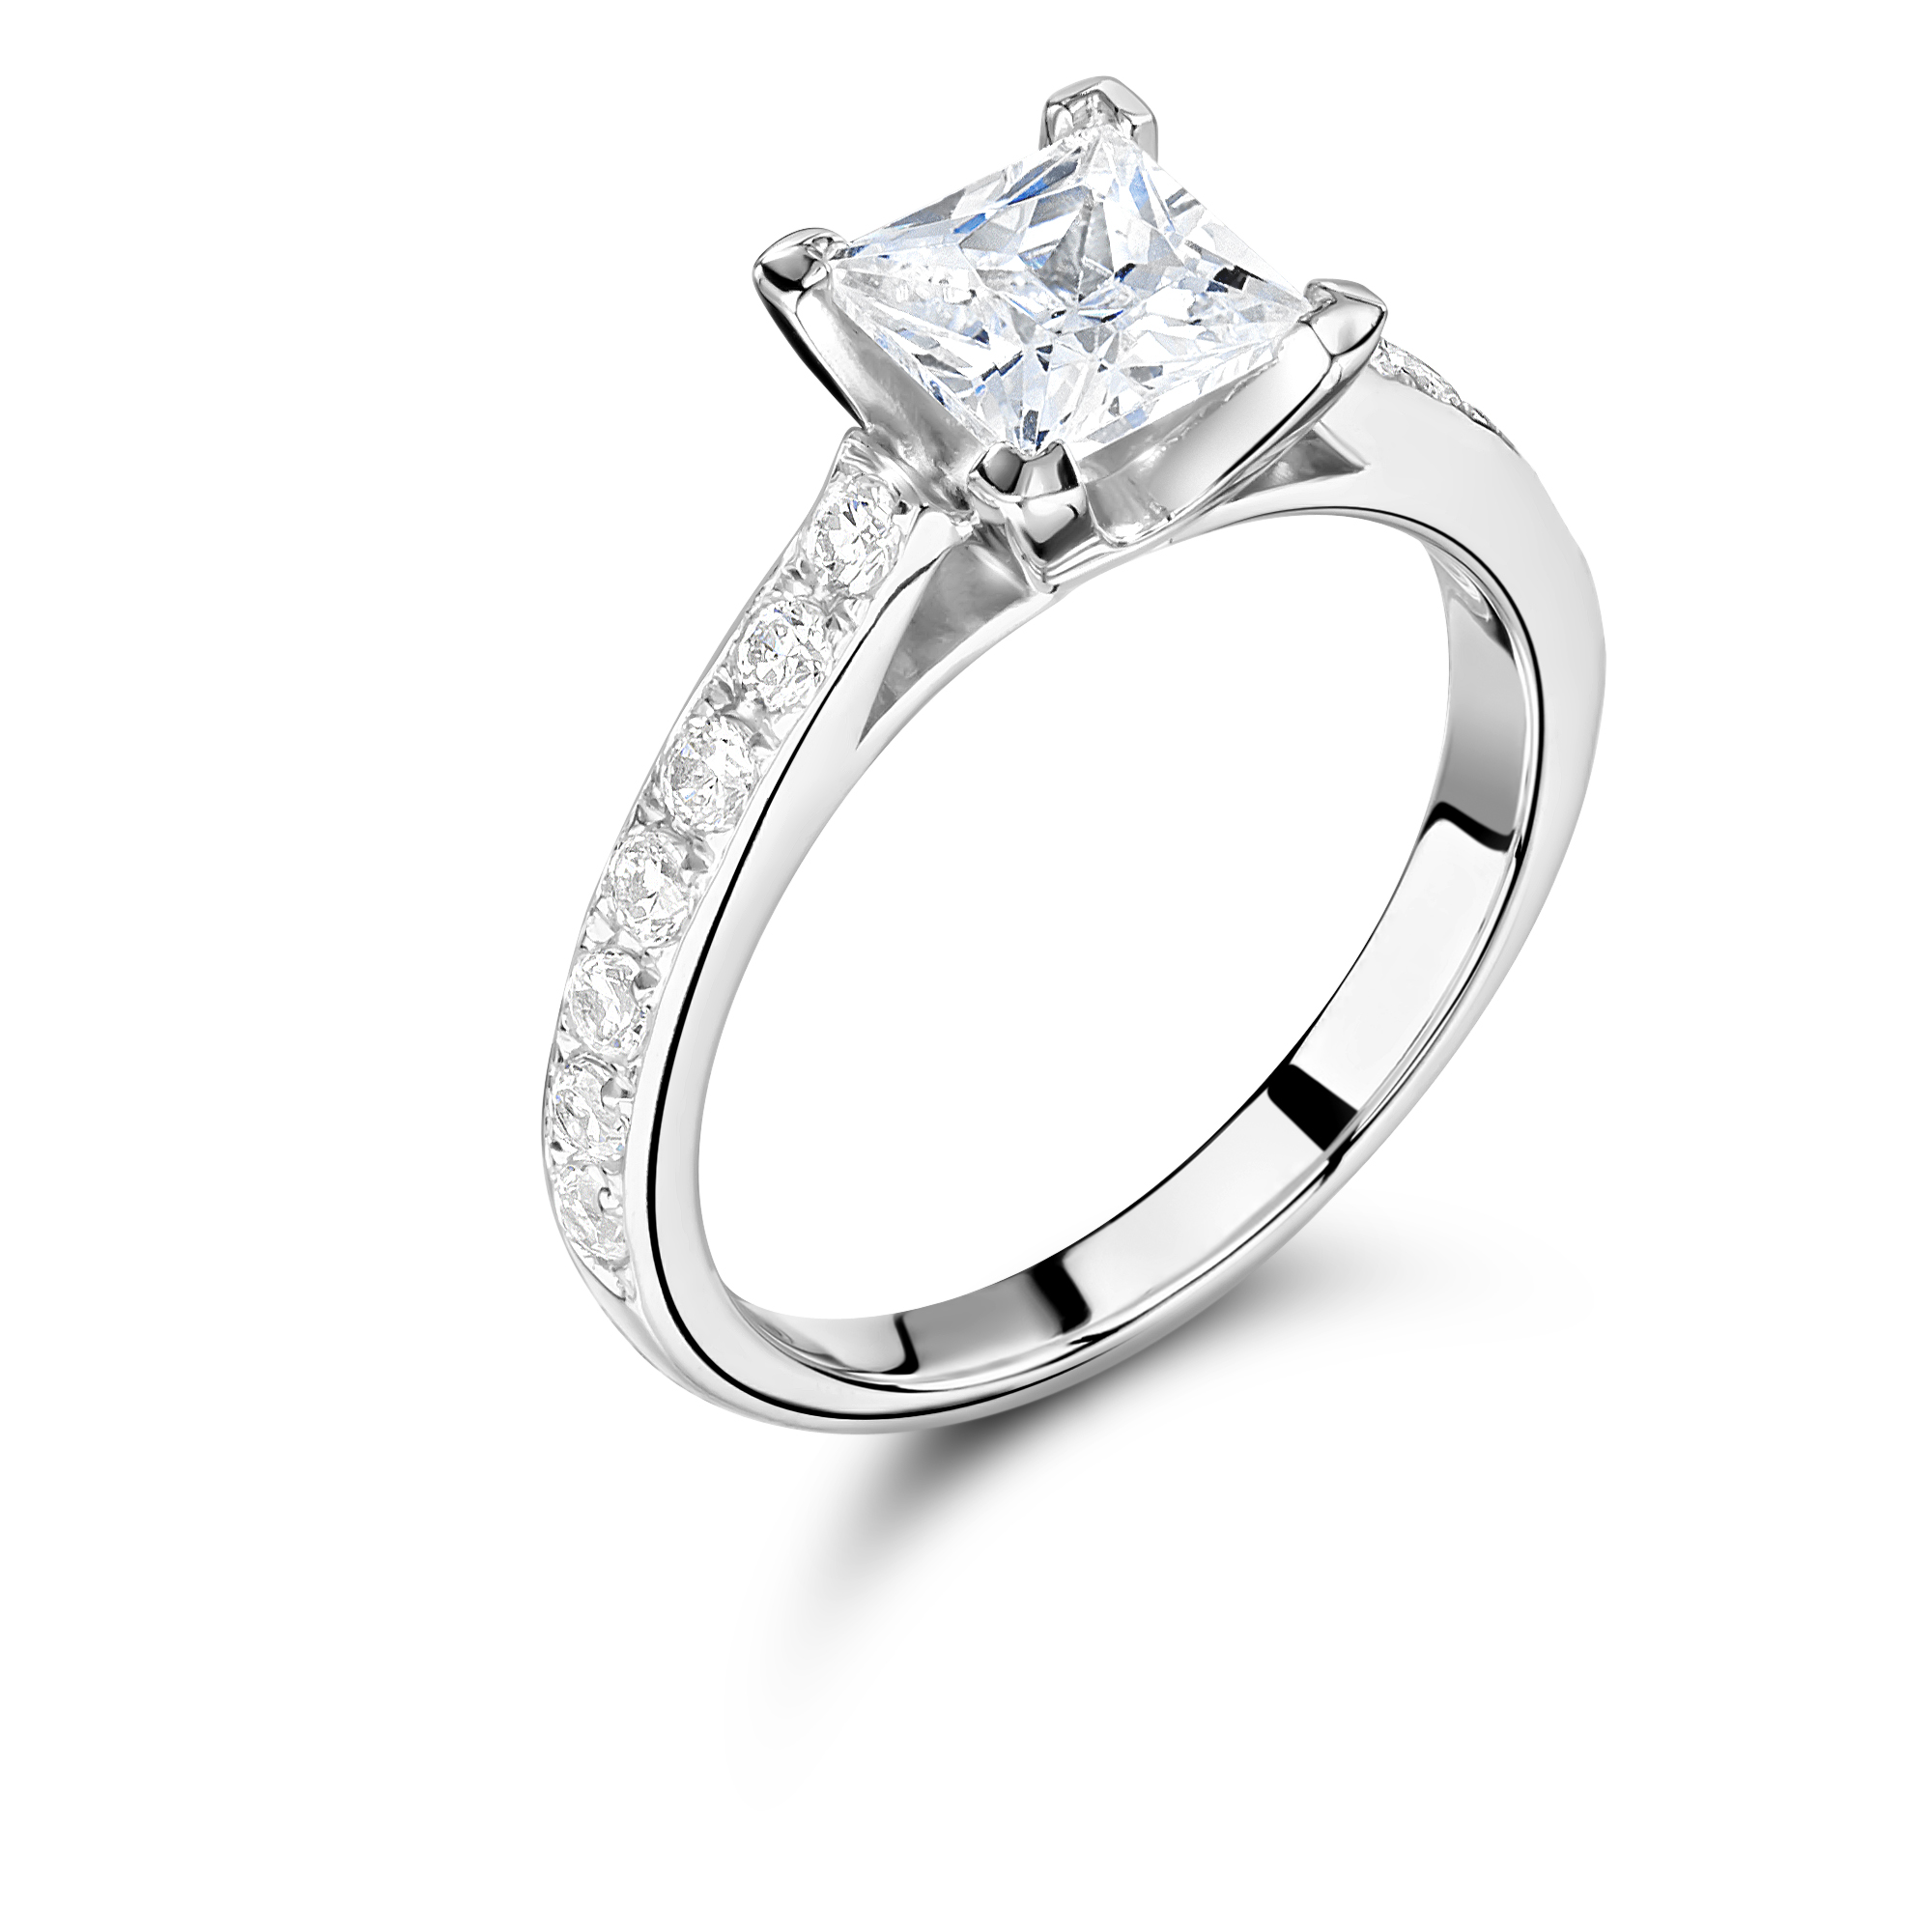 other show their anyone photos of pear shaped can luxury me or diamond wedding rings